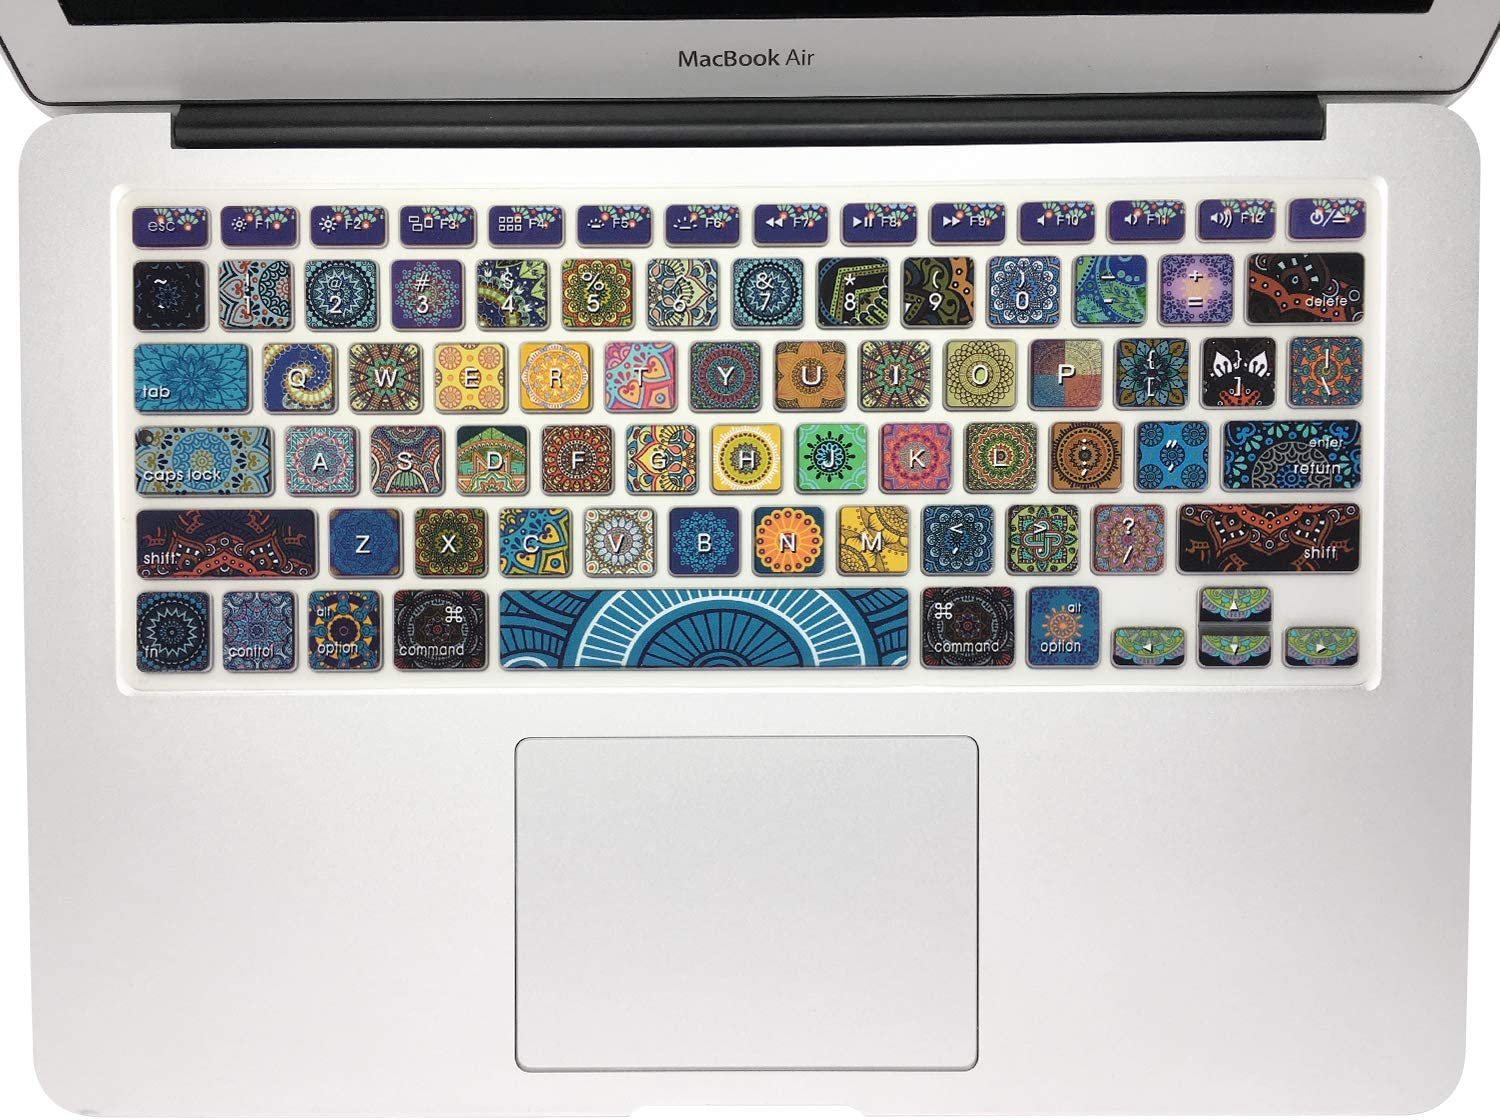 SANFORIN Silicone Keyboard Cover with Pattern for MacBook Pro 13/15 /17 Inch (with/Without Retina Display), Magic Keyboard and MacBook Air 13 Inch A1466/A1369, Bohemian Style